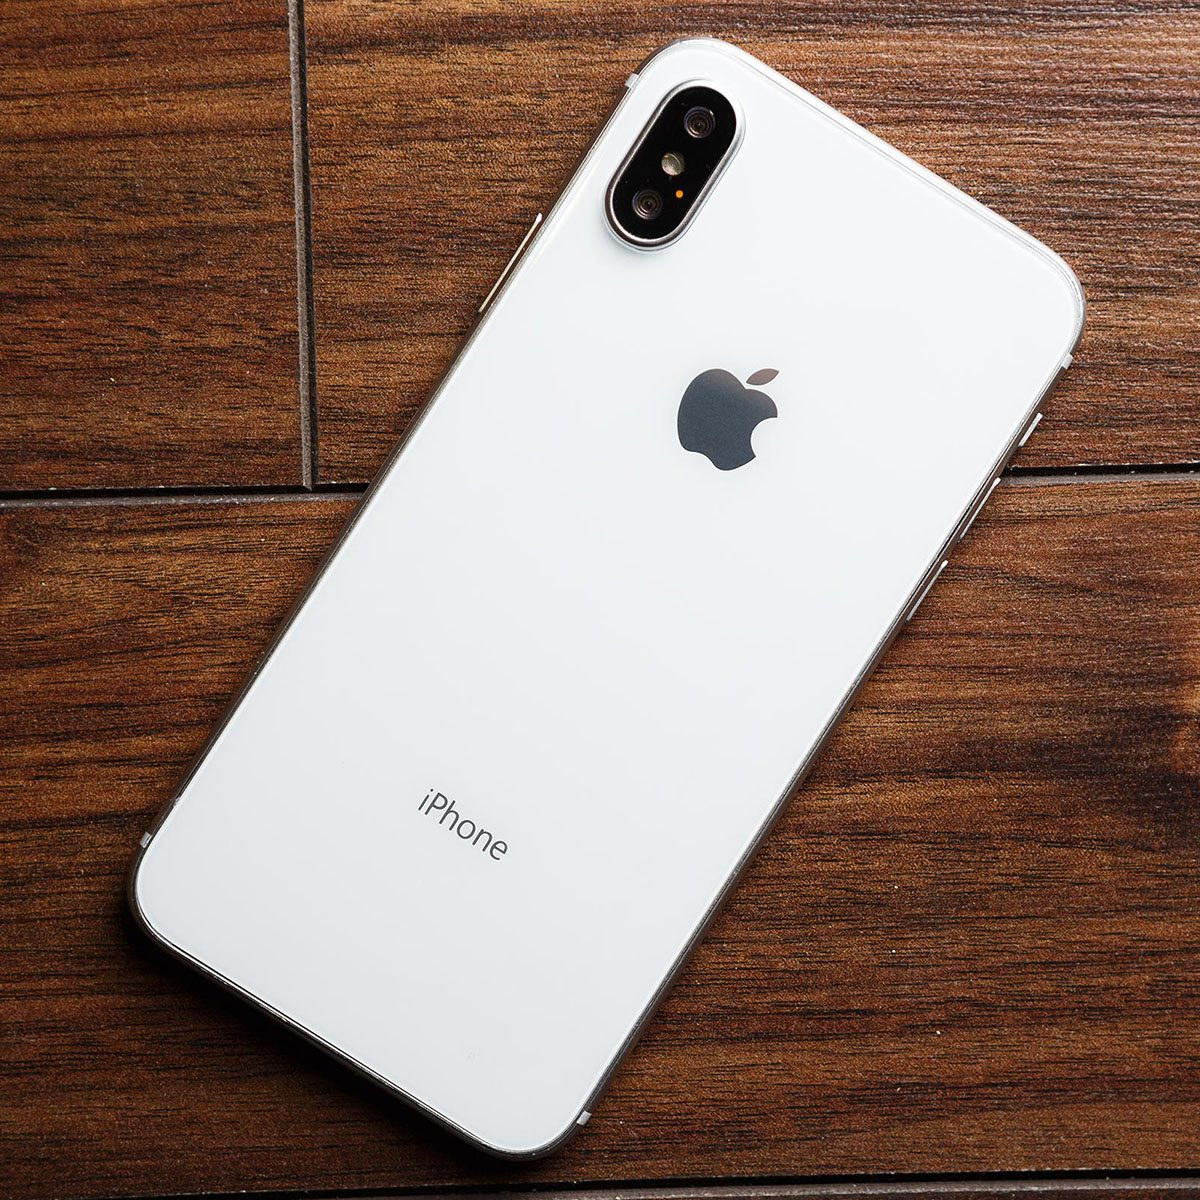 iphone above wooden